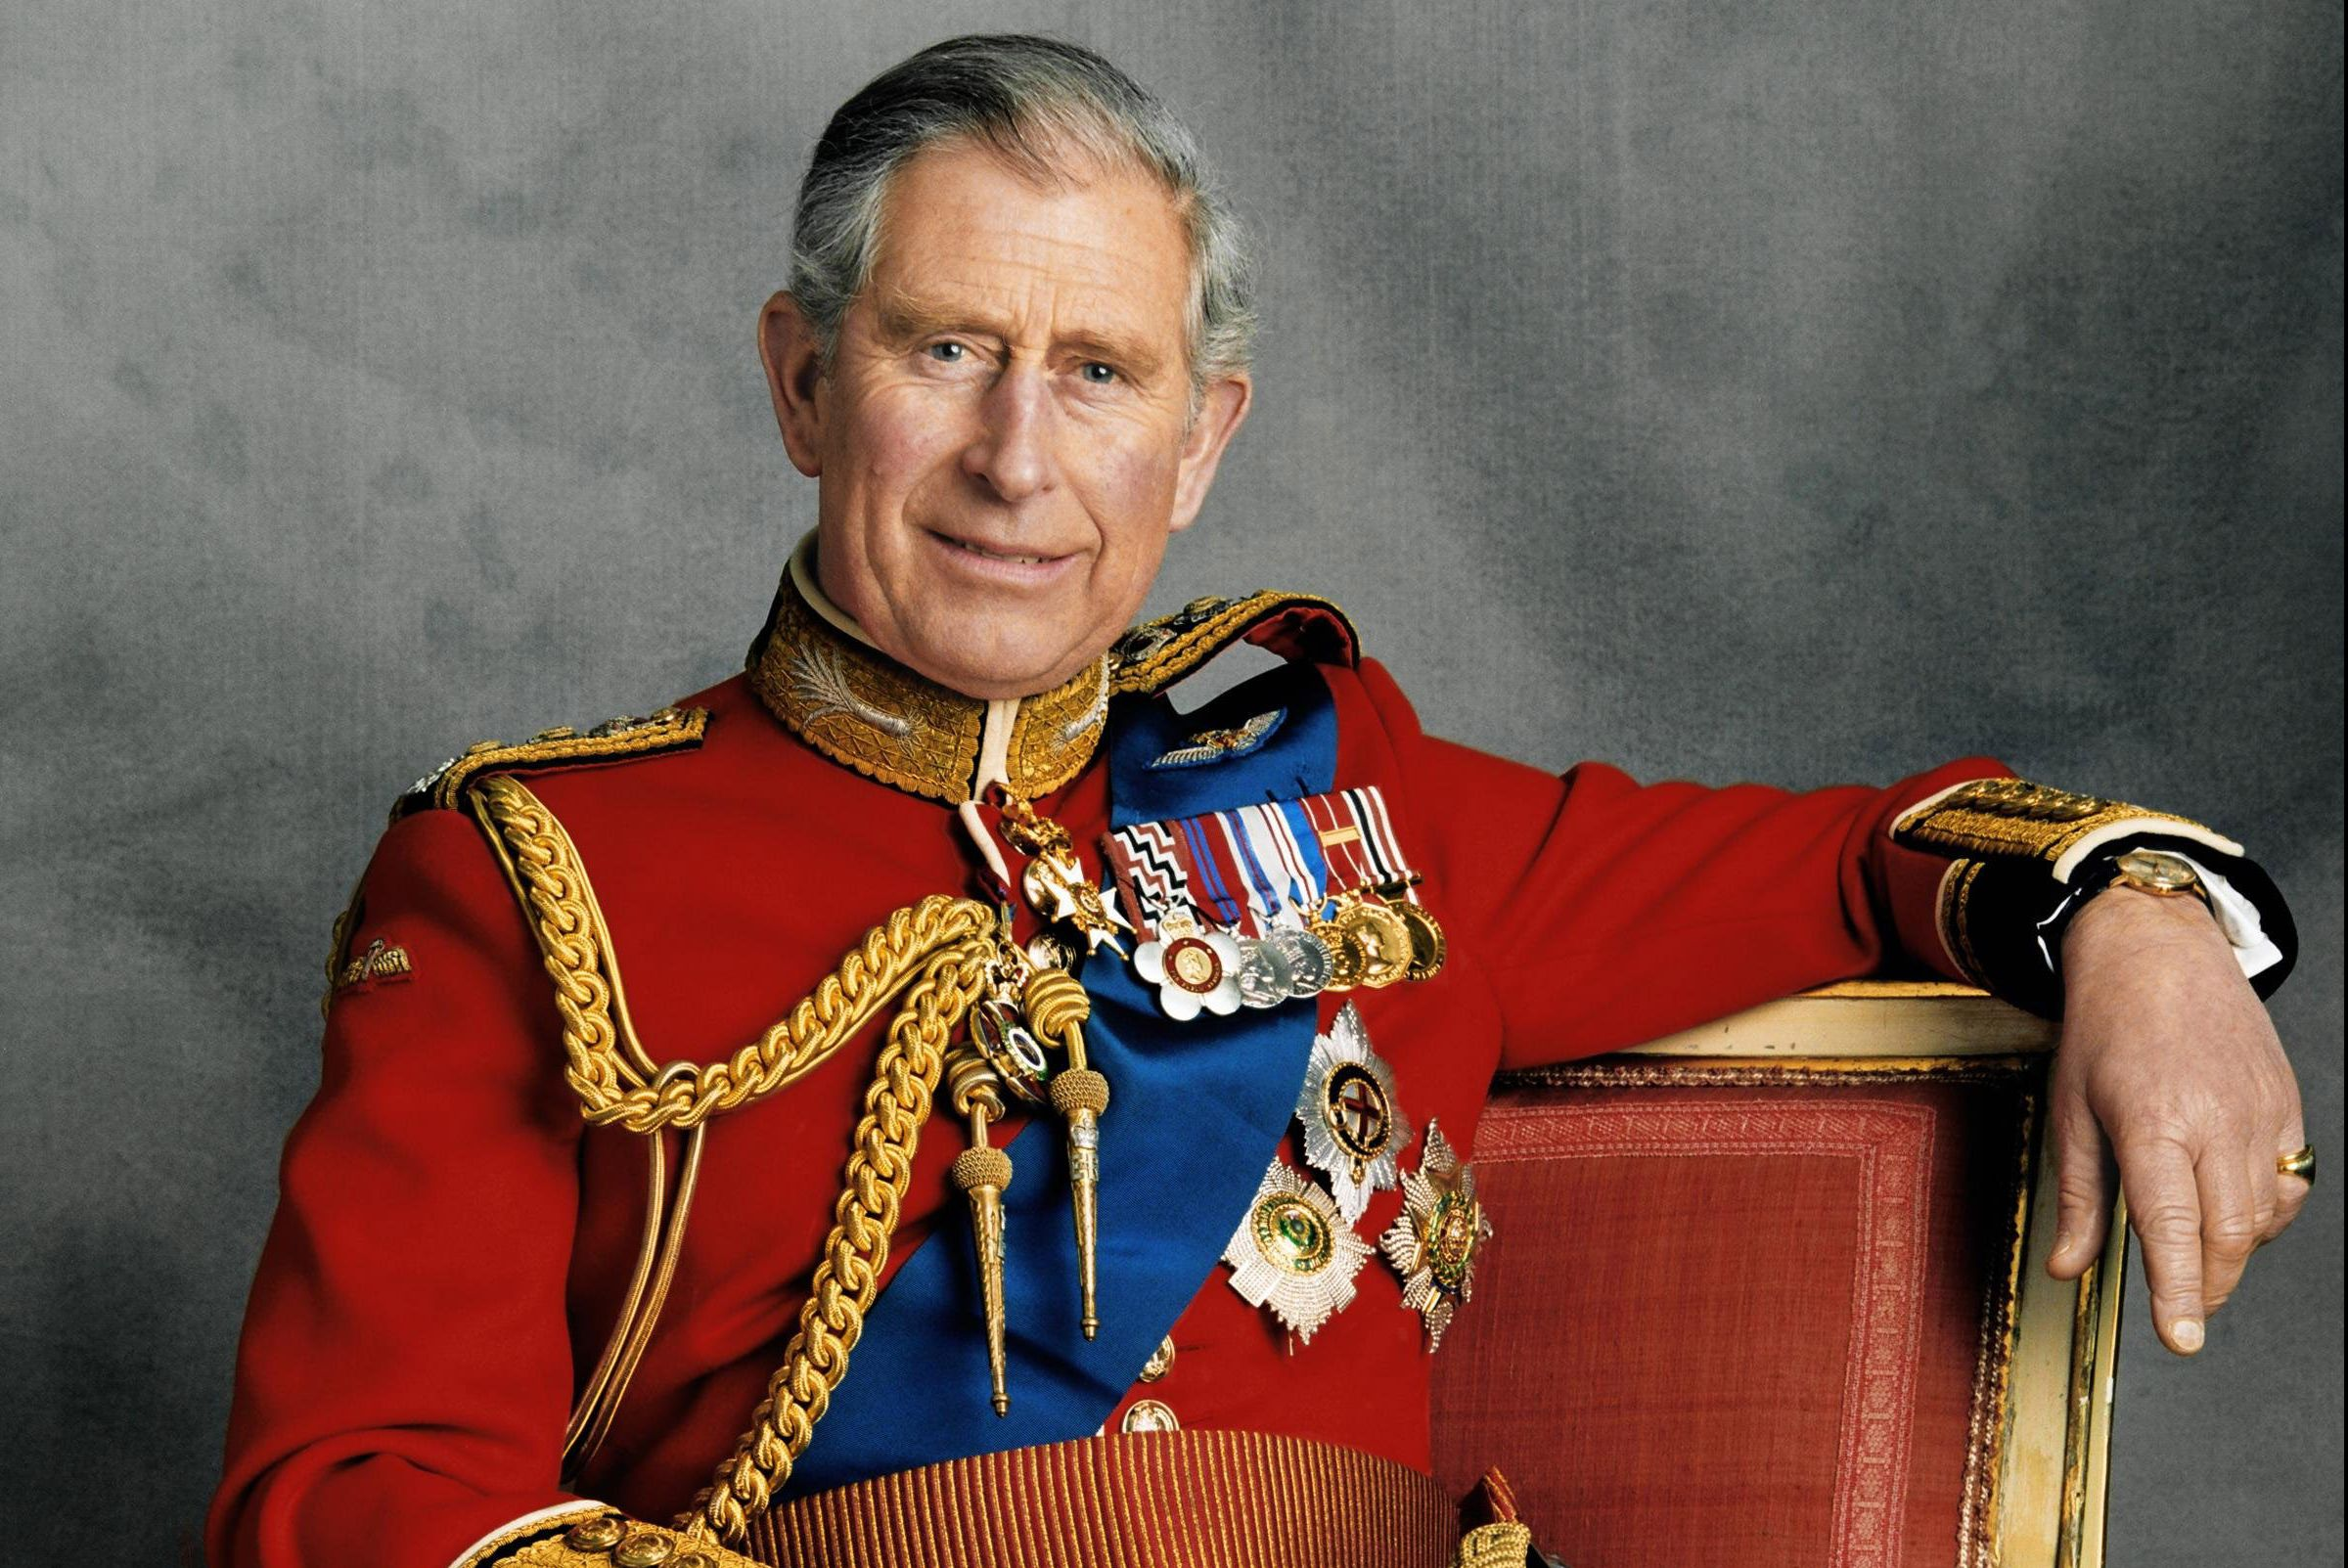 Prince Charles Makes People Iron His Shoelaces and That's the LEAST Extra of His Royal Demands